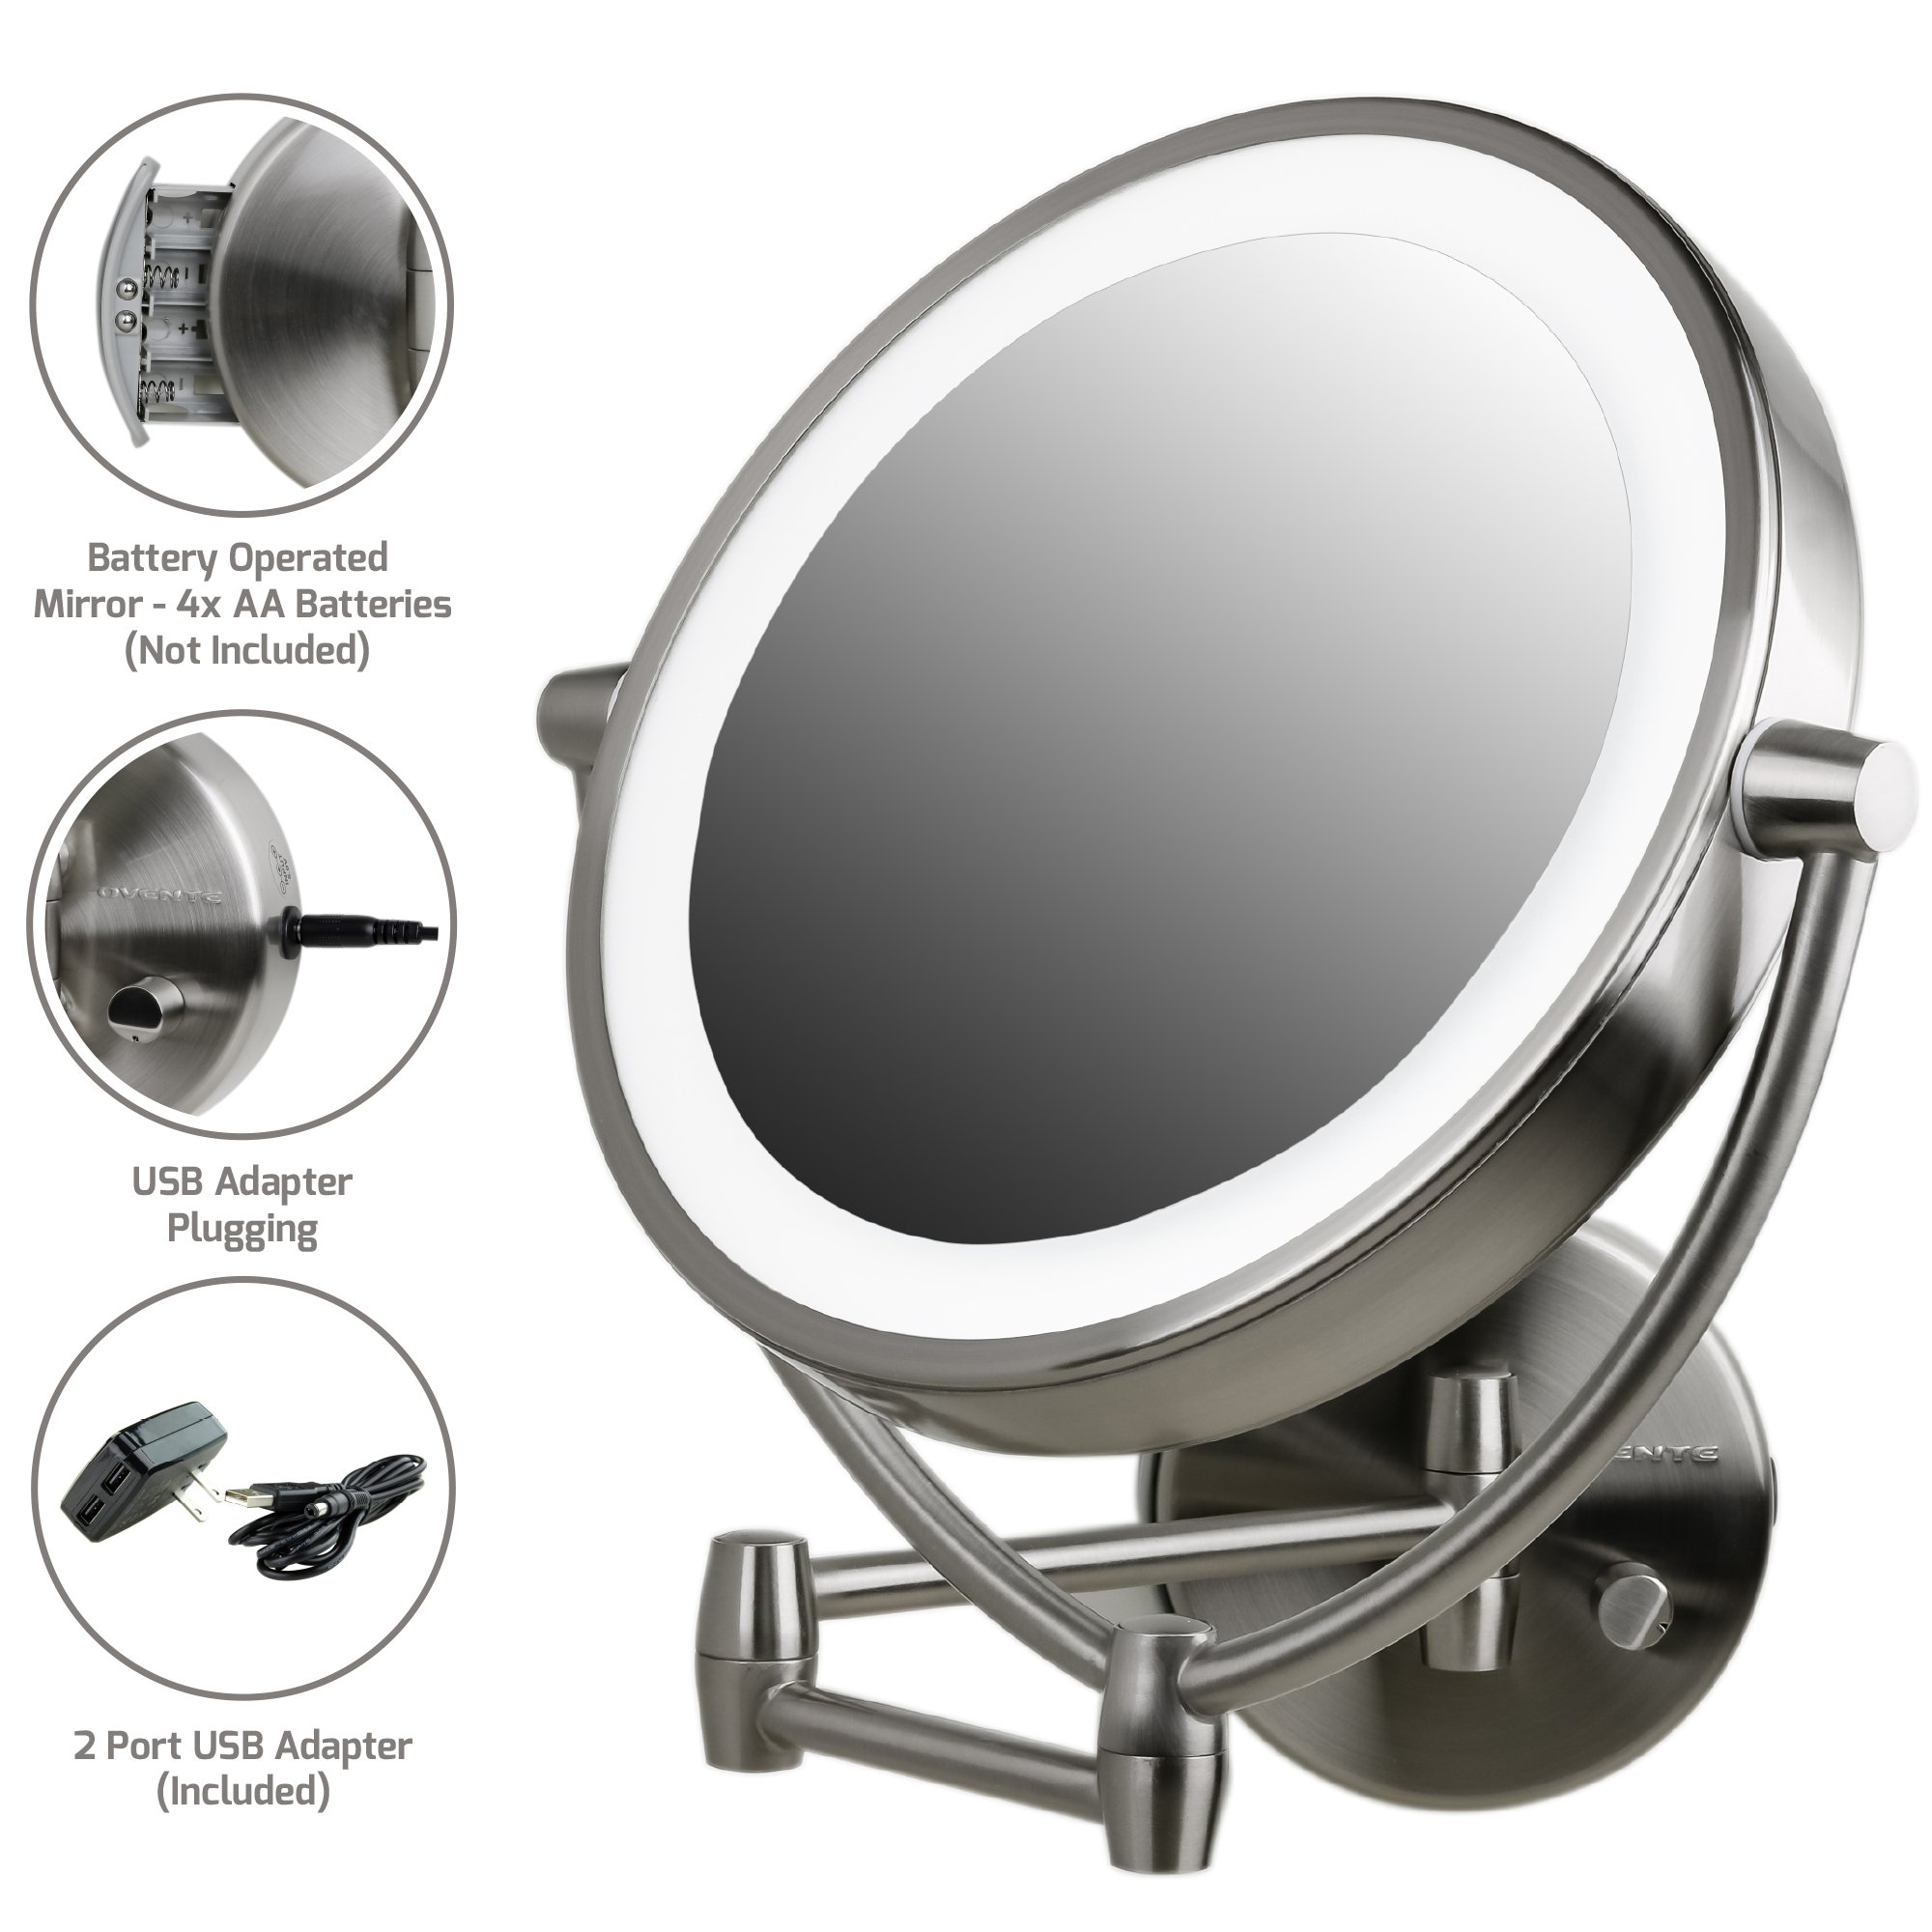 Ovente Wall Mount Mirror, Battery or USB Adapter Operated, Dimmable LED Lighted Makeup Mirror, 1x/10x Magnification, 9.5'', Nickel Brushed (MLW45BR1x10x)